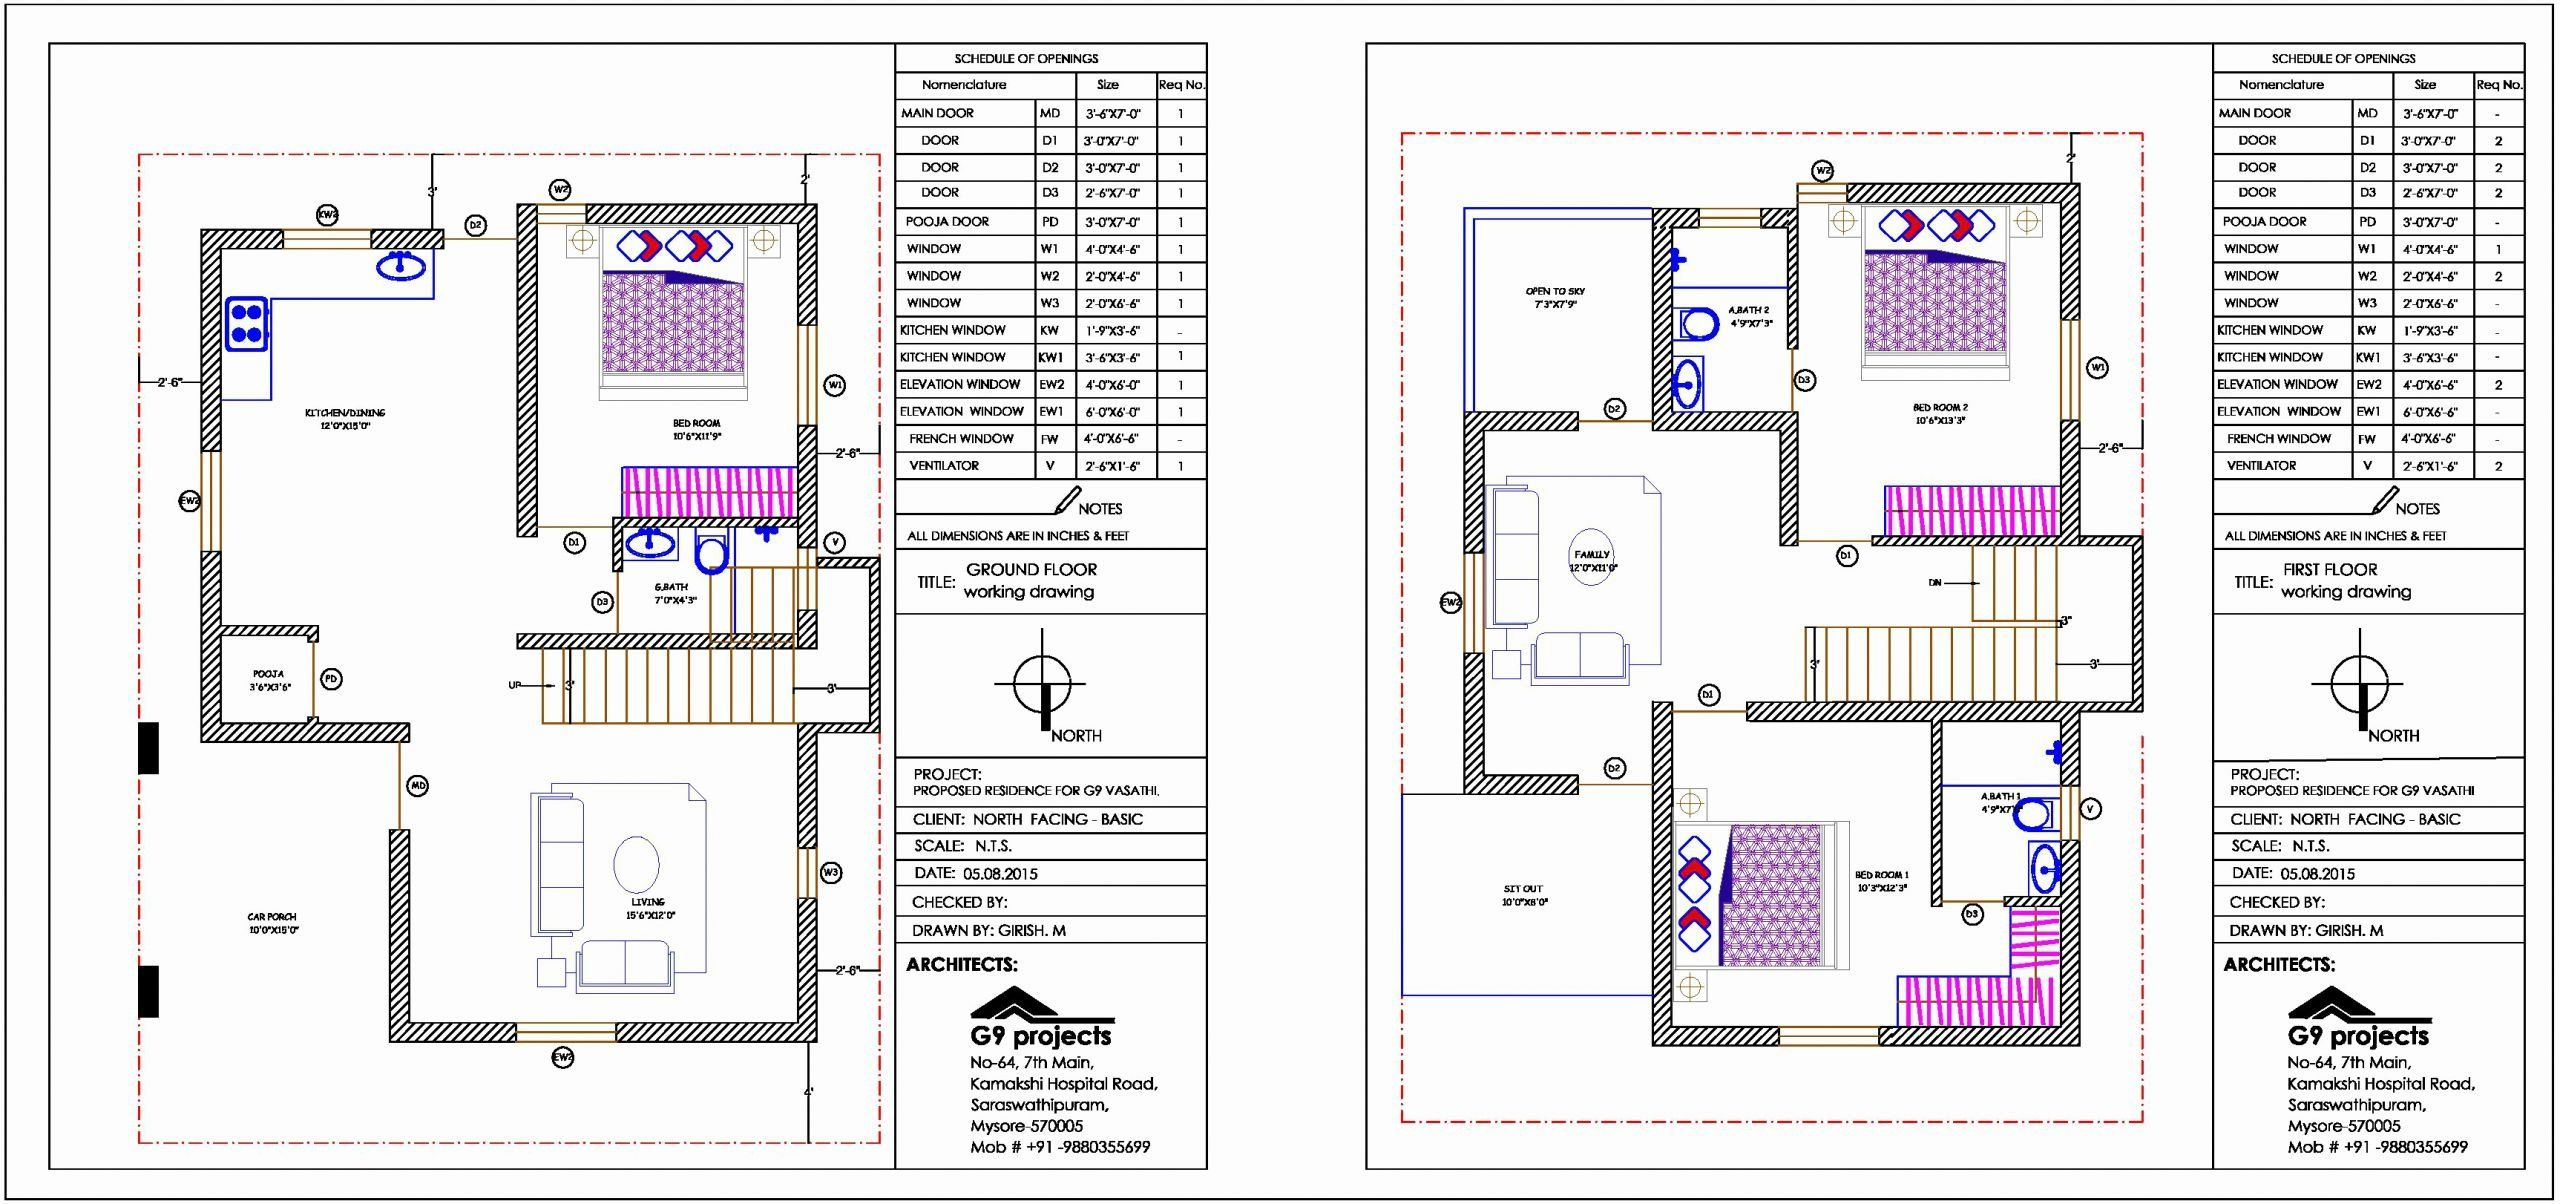 16 40 X 30 House Plans Islaminjapanmedia Org In 2020 House Map My House Plans Family House Plans